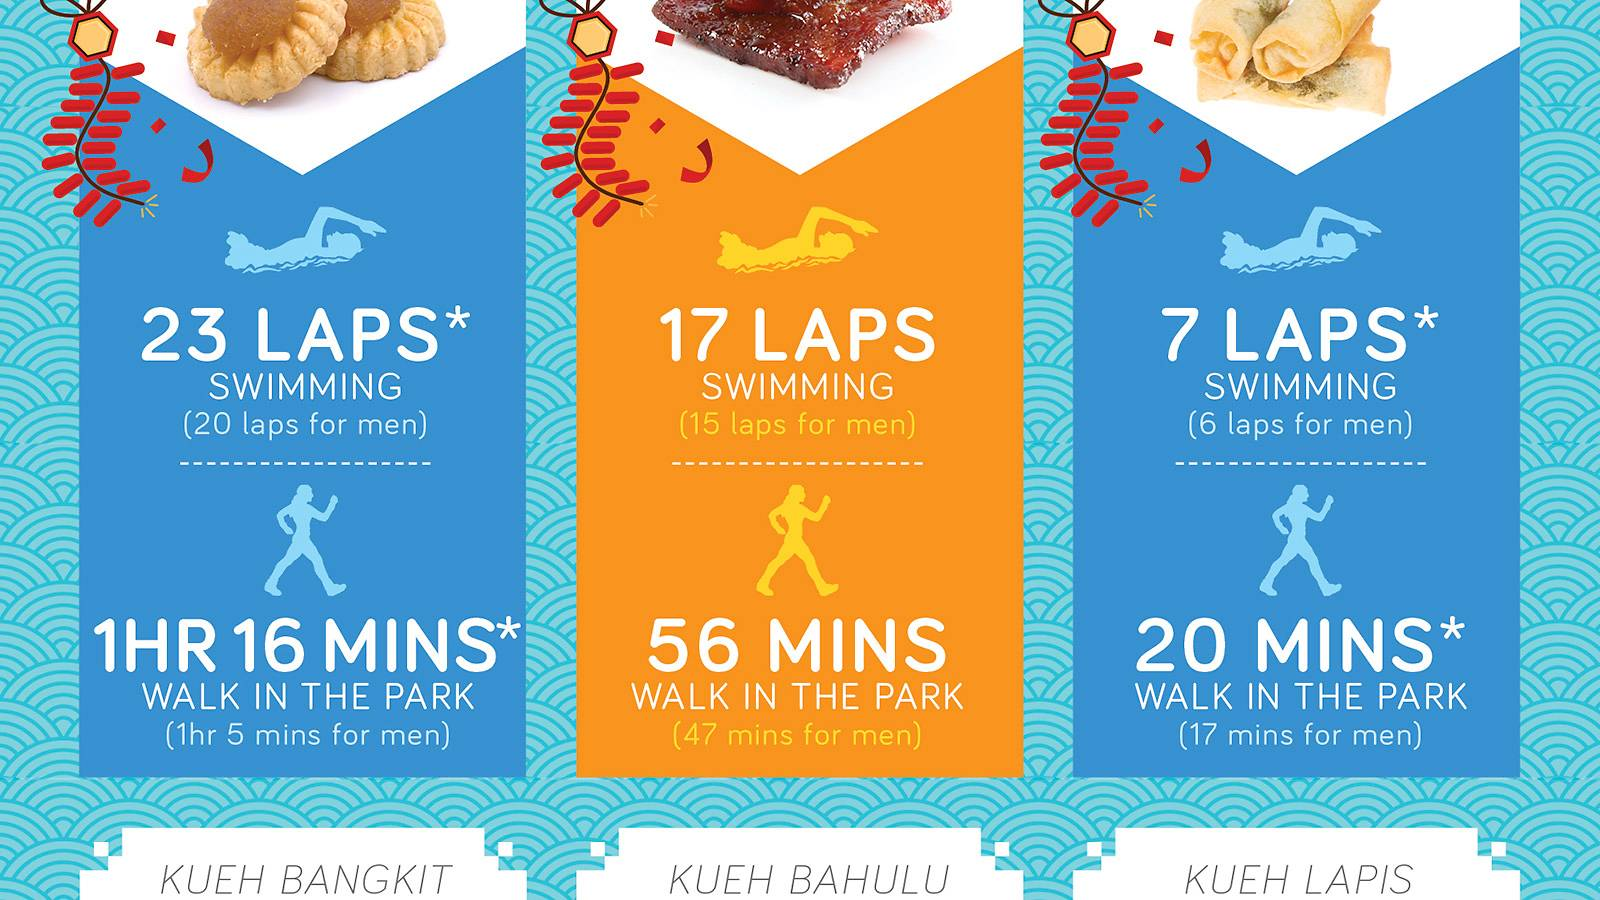 Parents-Beware-of-the-calorie-count-for-CNY-goodies-INFOGRAPHIC2